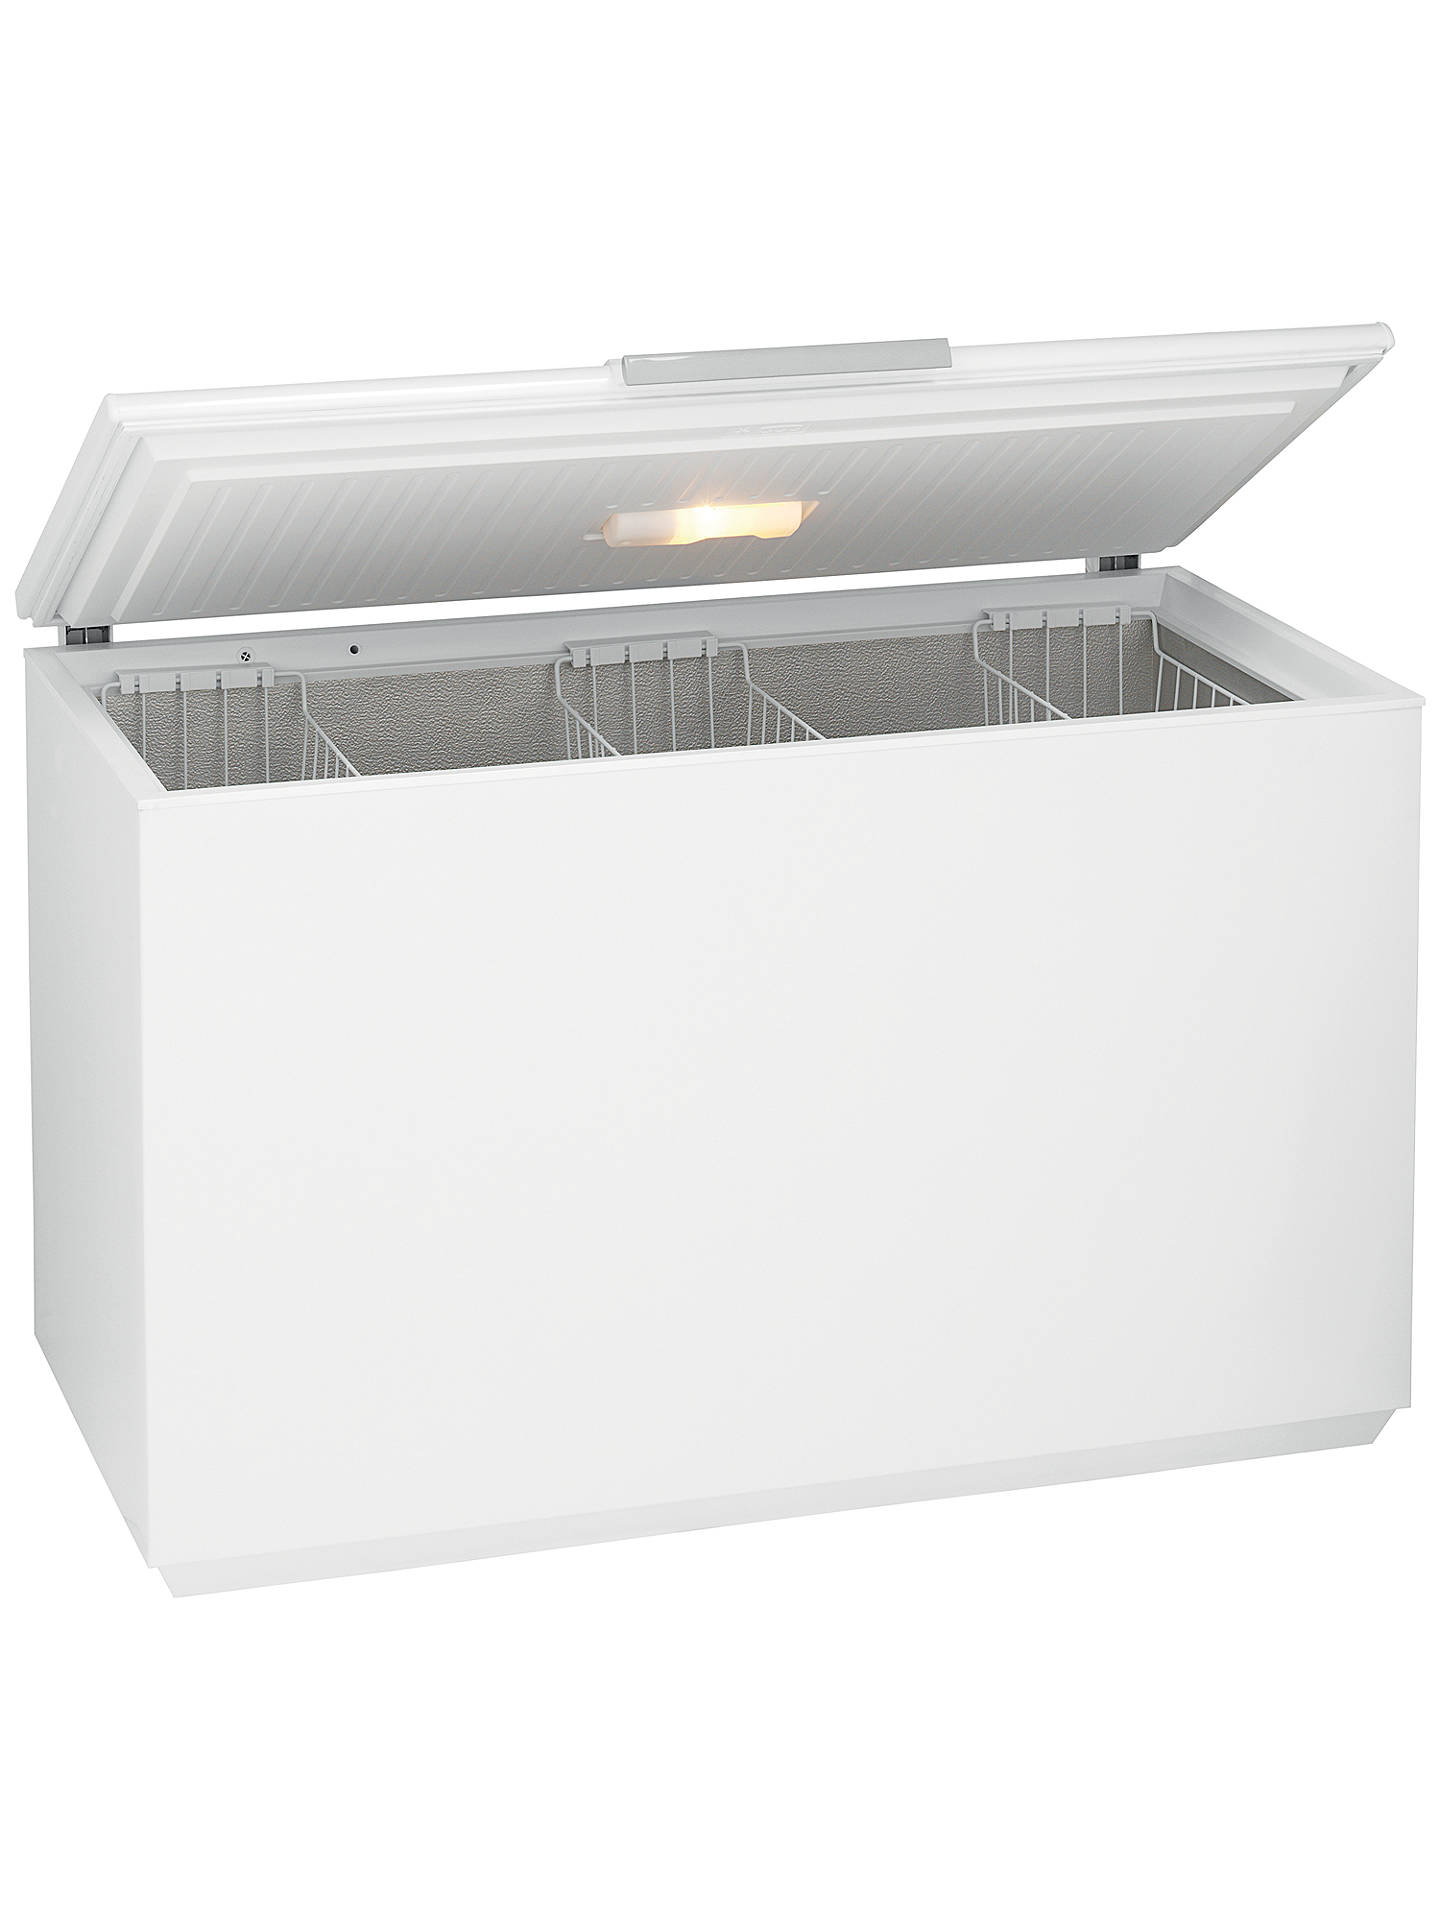 BuyJohn Lewis & Partners JLCH400 Chest Freezer, A+ Energy Rating, 134cm Wide, White Online at johnlewis.com